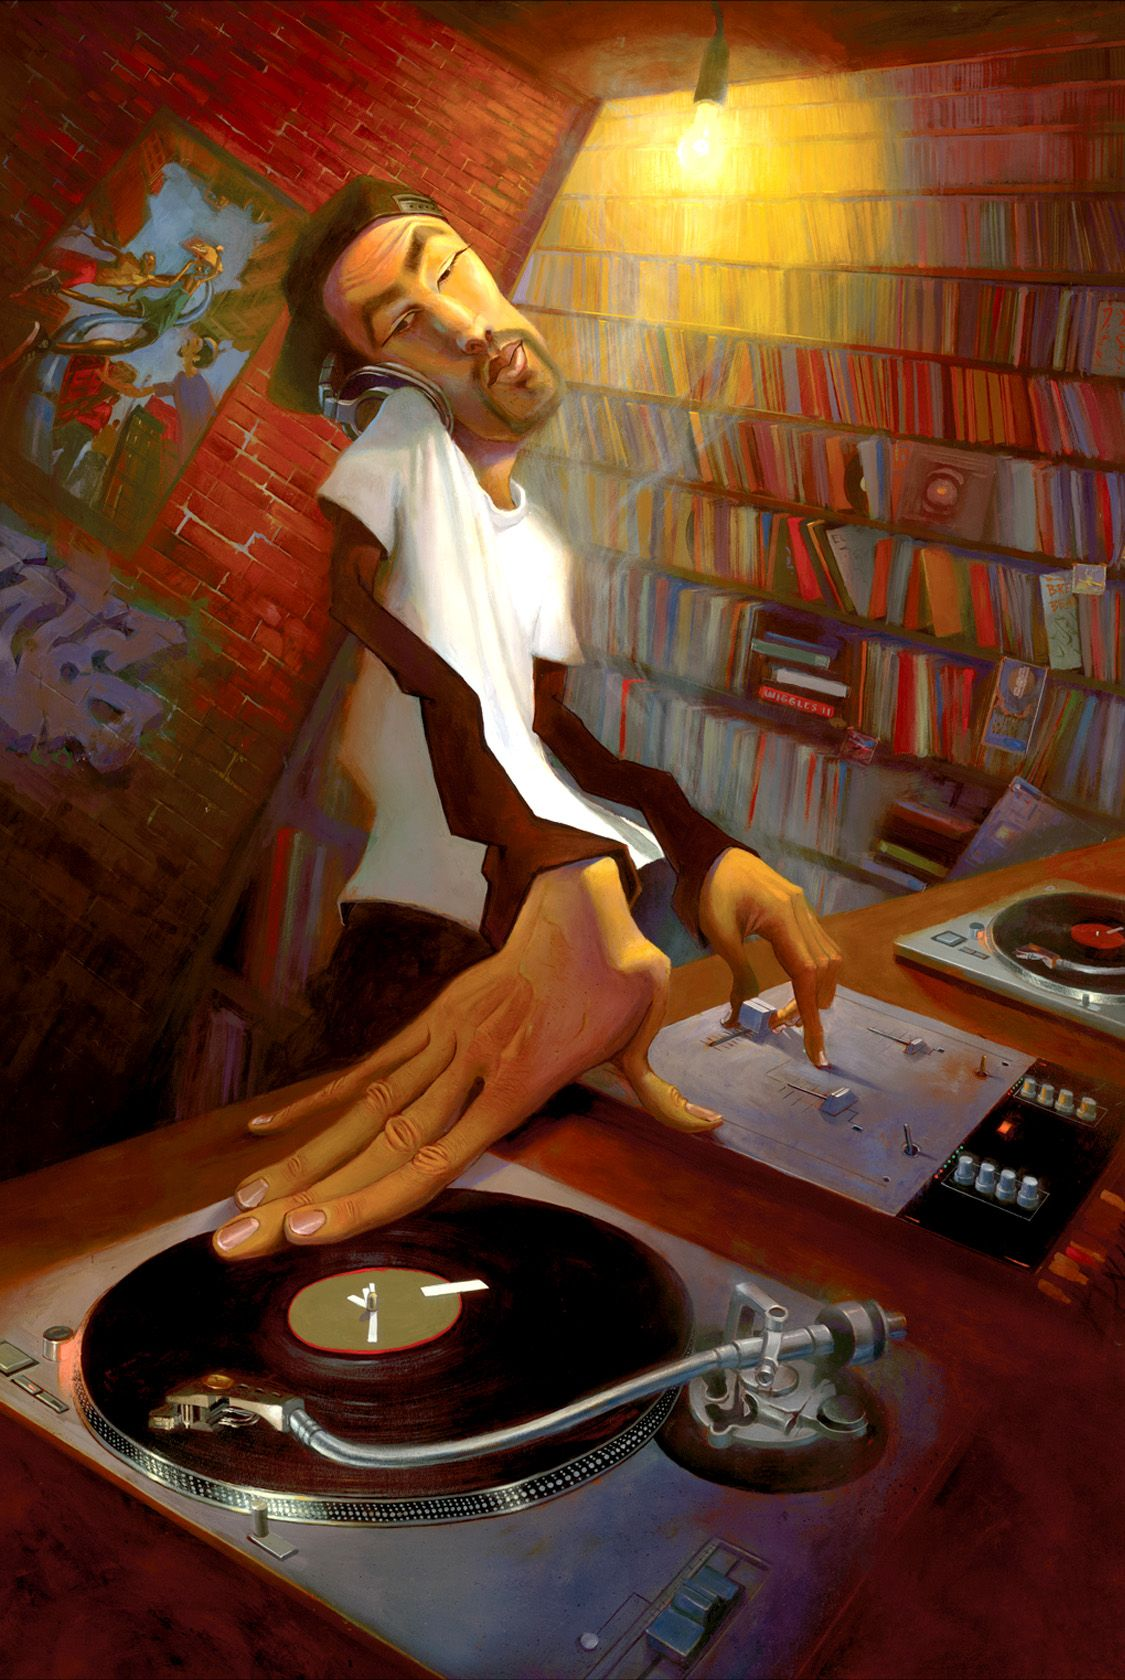 THE DJ Hip hop art, Street art, Art